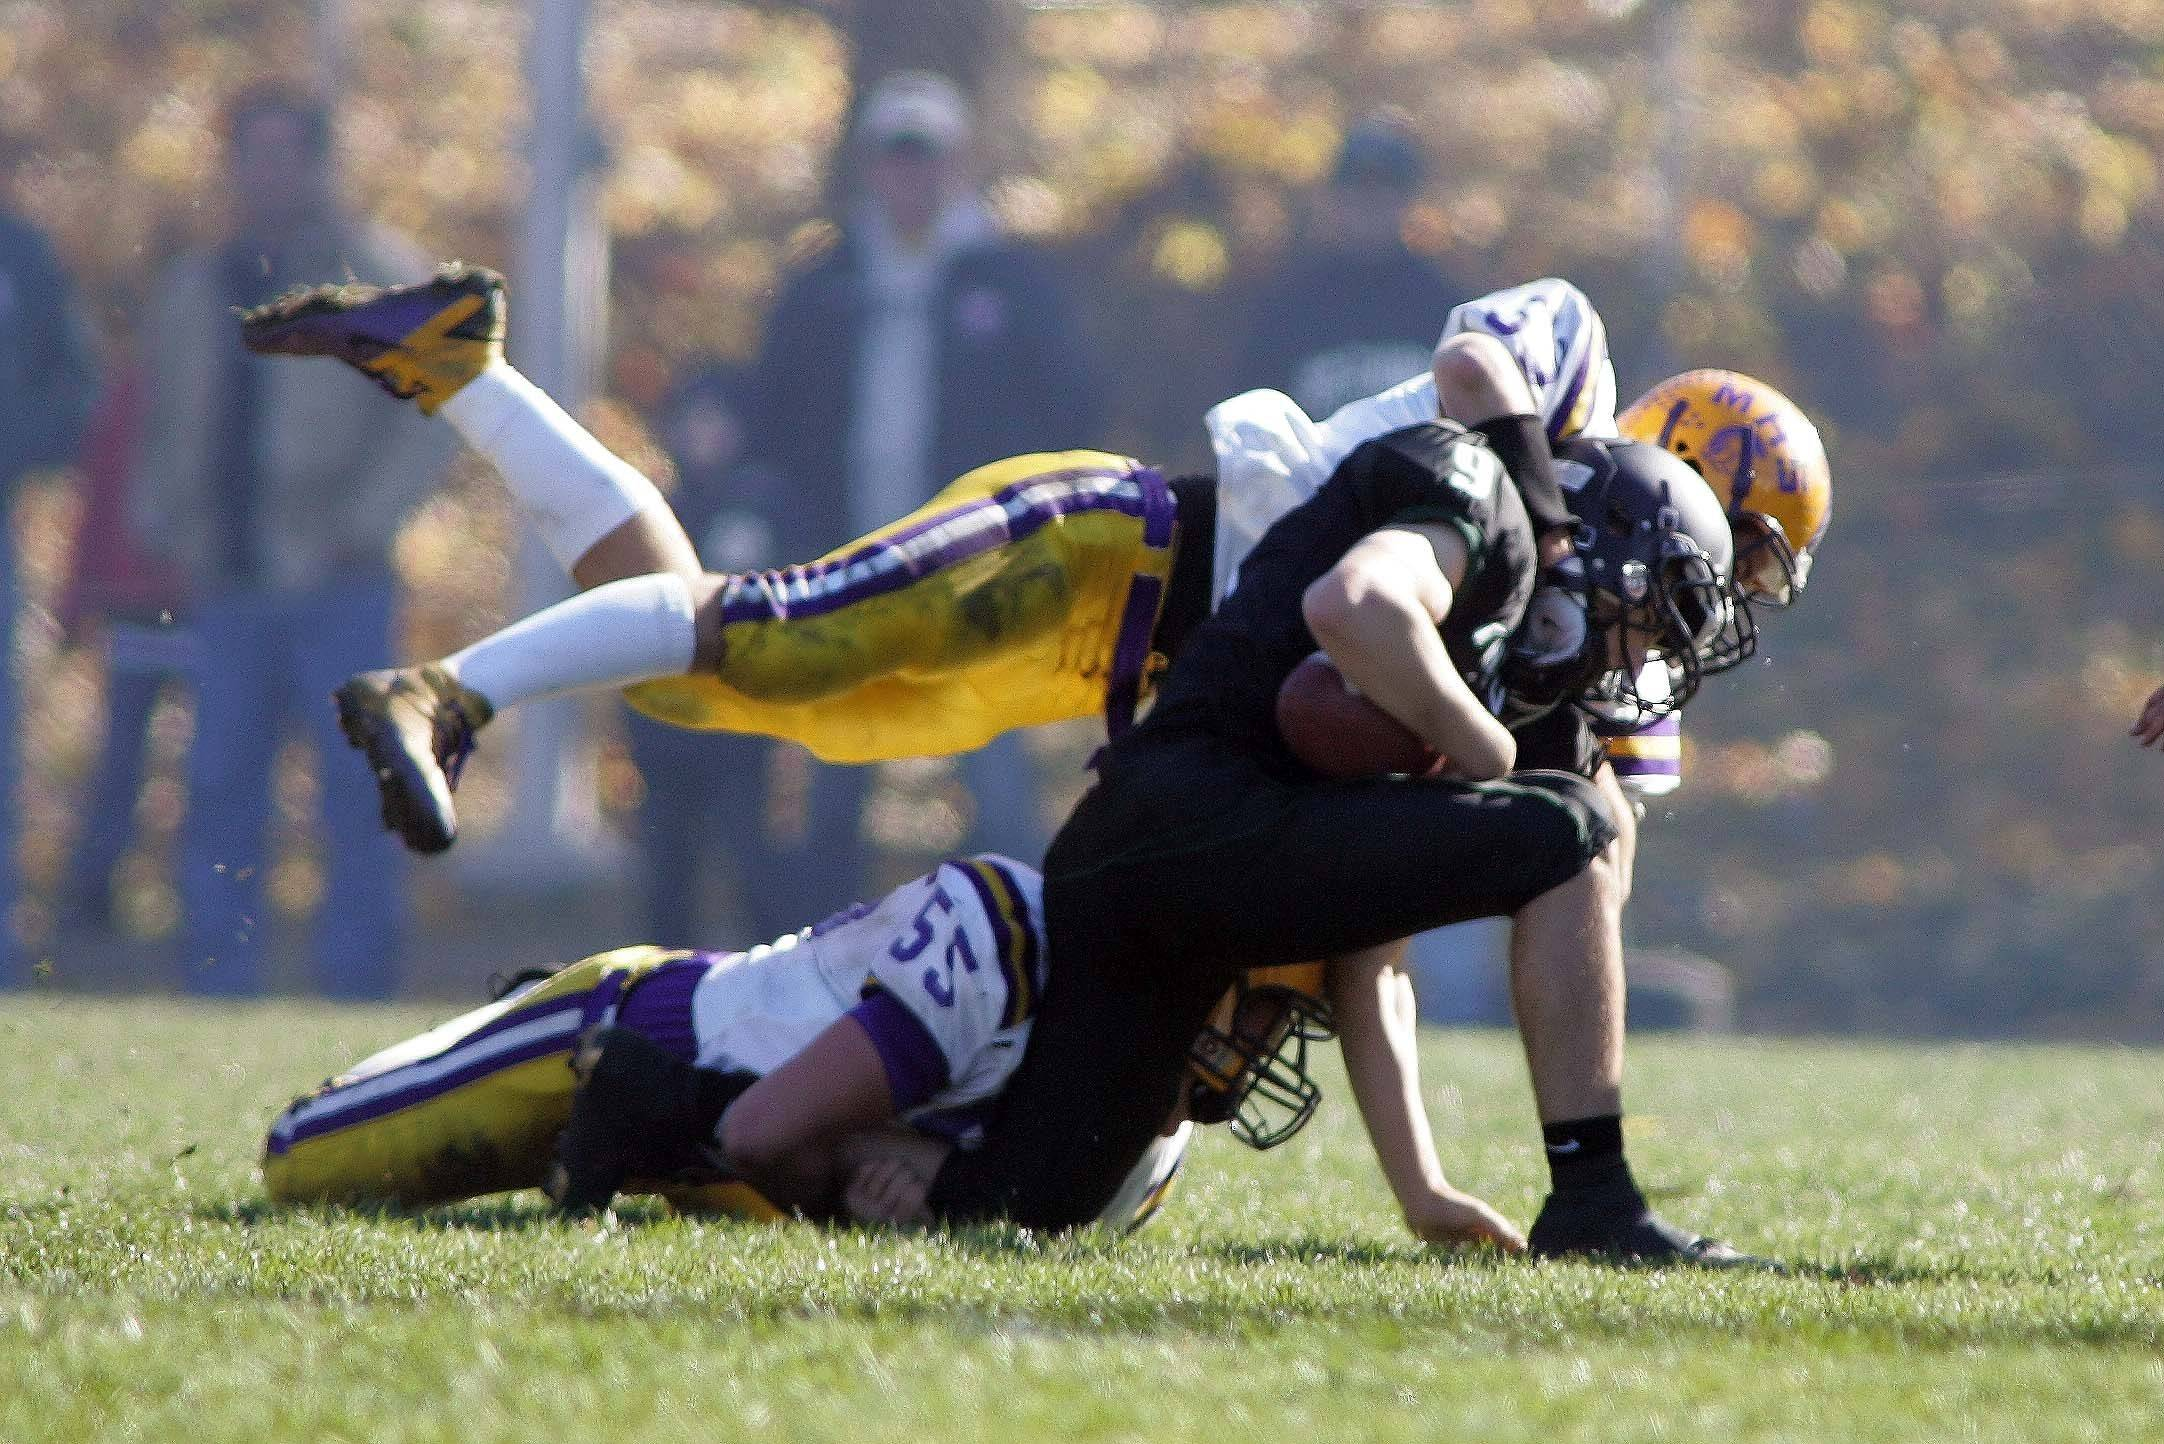 St. Edward quarterback Ben Lehman, 9, is brought down during Mendota at St. Edward Class 4A playoff football in Elgin Saturday, November 6, 2010. 9